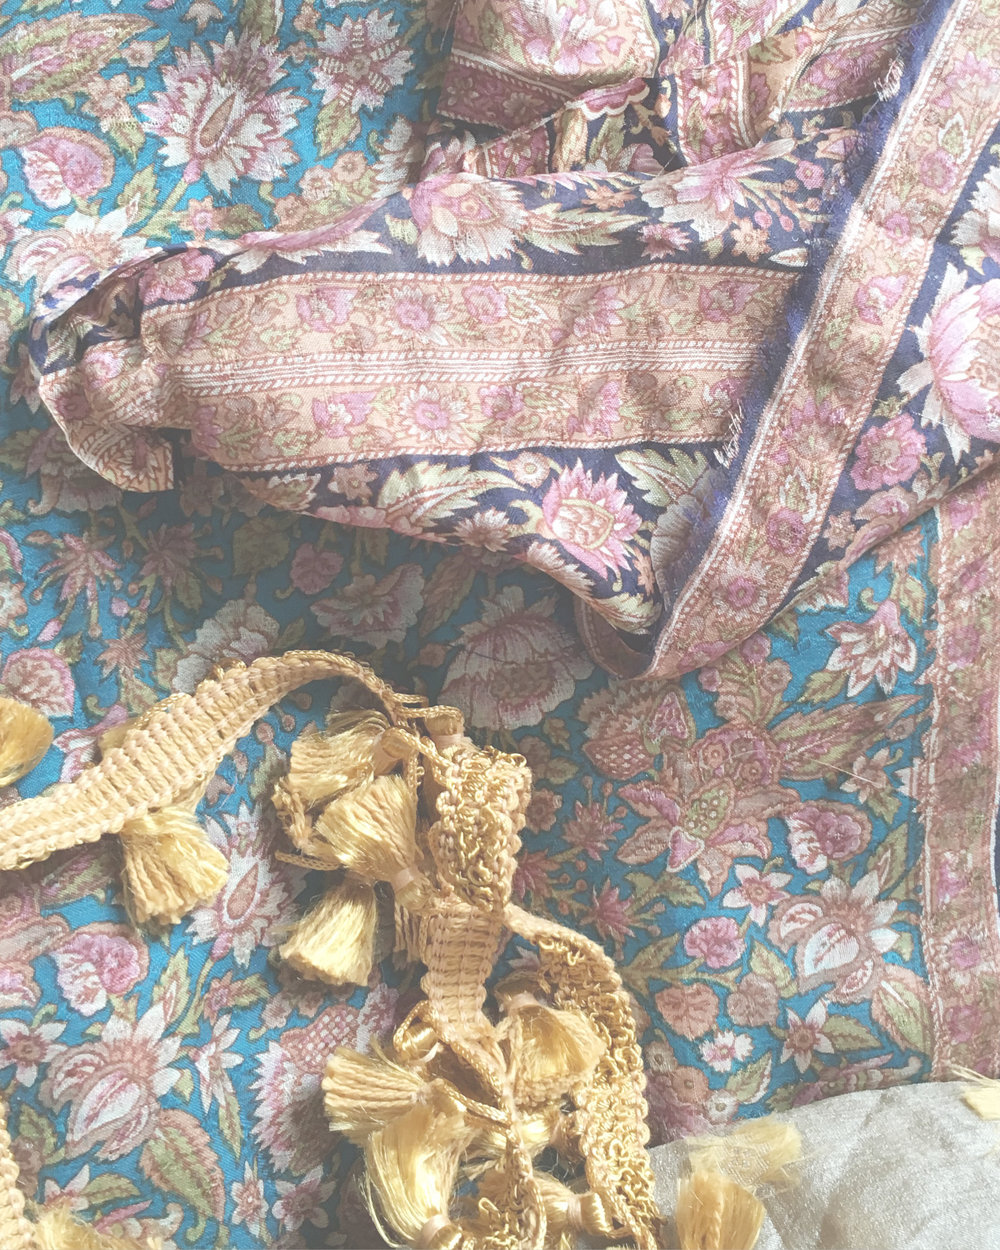 Sourcing - Vintage textiles are sourced from around the world.Each individual piece is chosen specifically for the print and color design. Fabrics that are otherwise rendered damaged or flawed are treated by us with care.